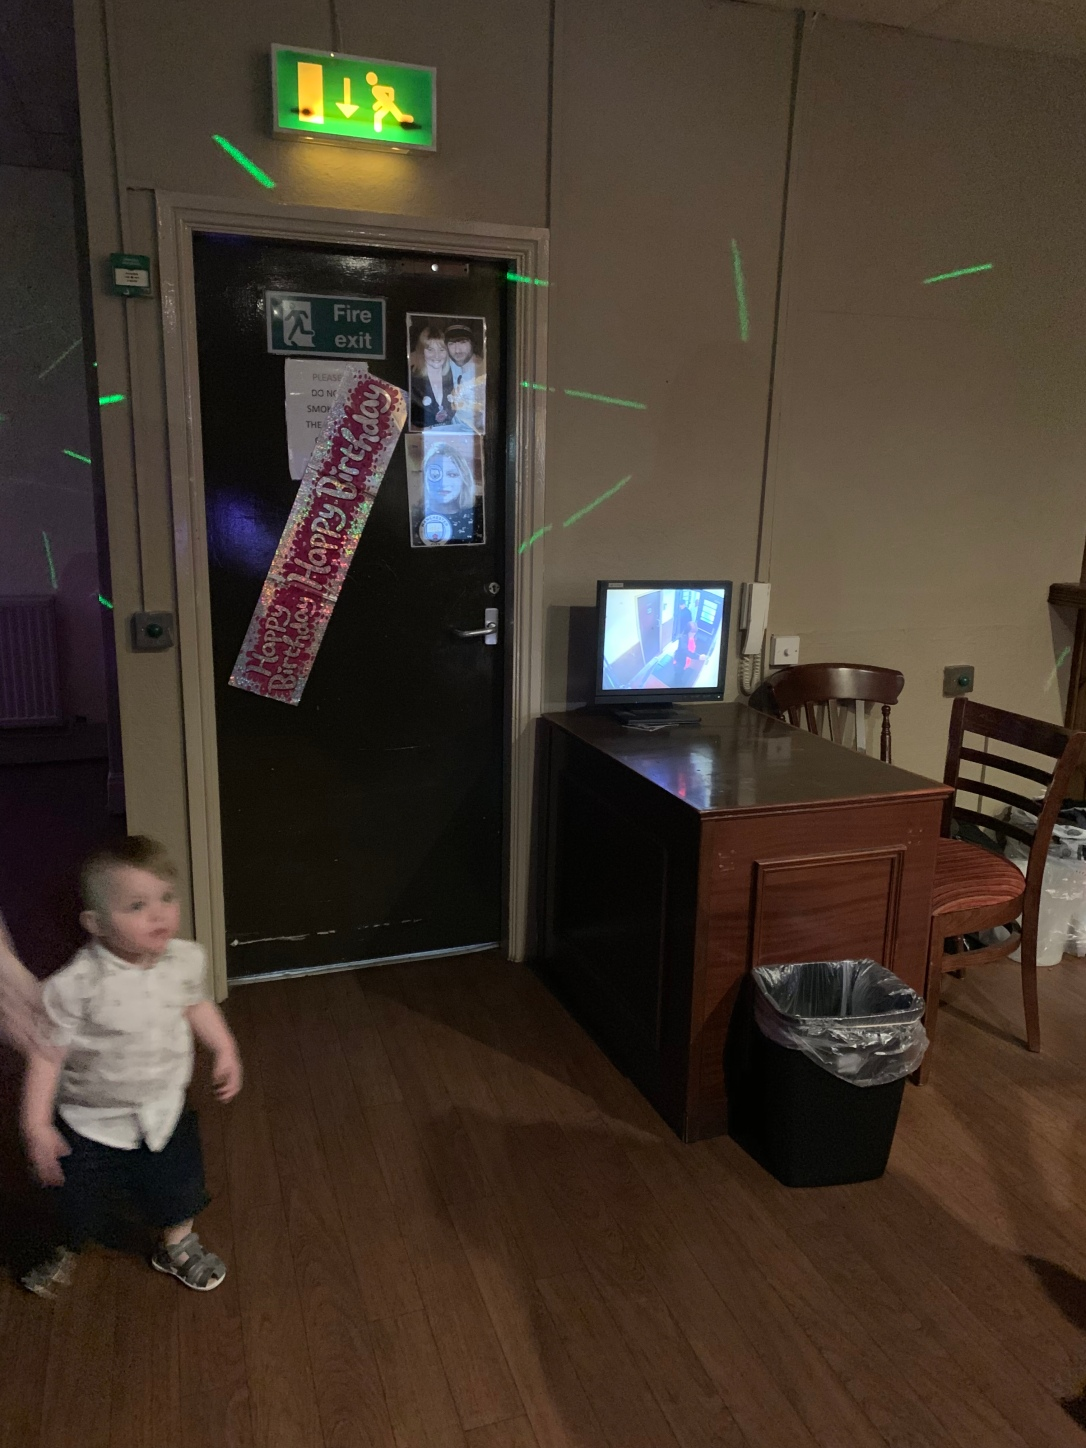 Joshua walking towards his mum, while we can see the birthday girl arriving on the security camera